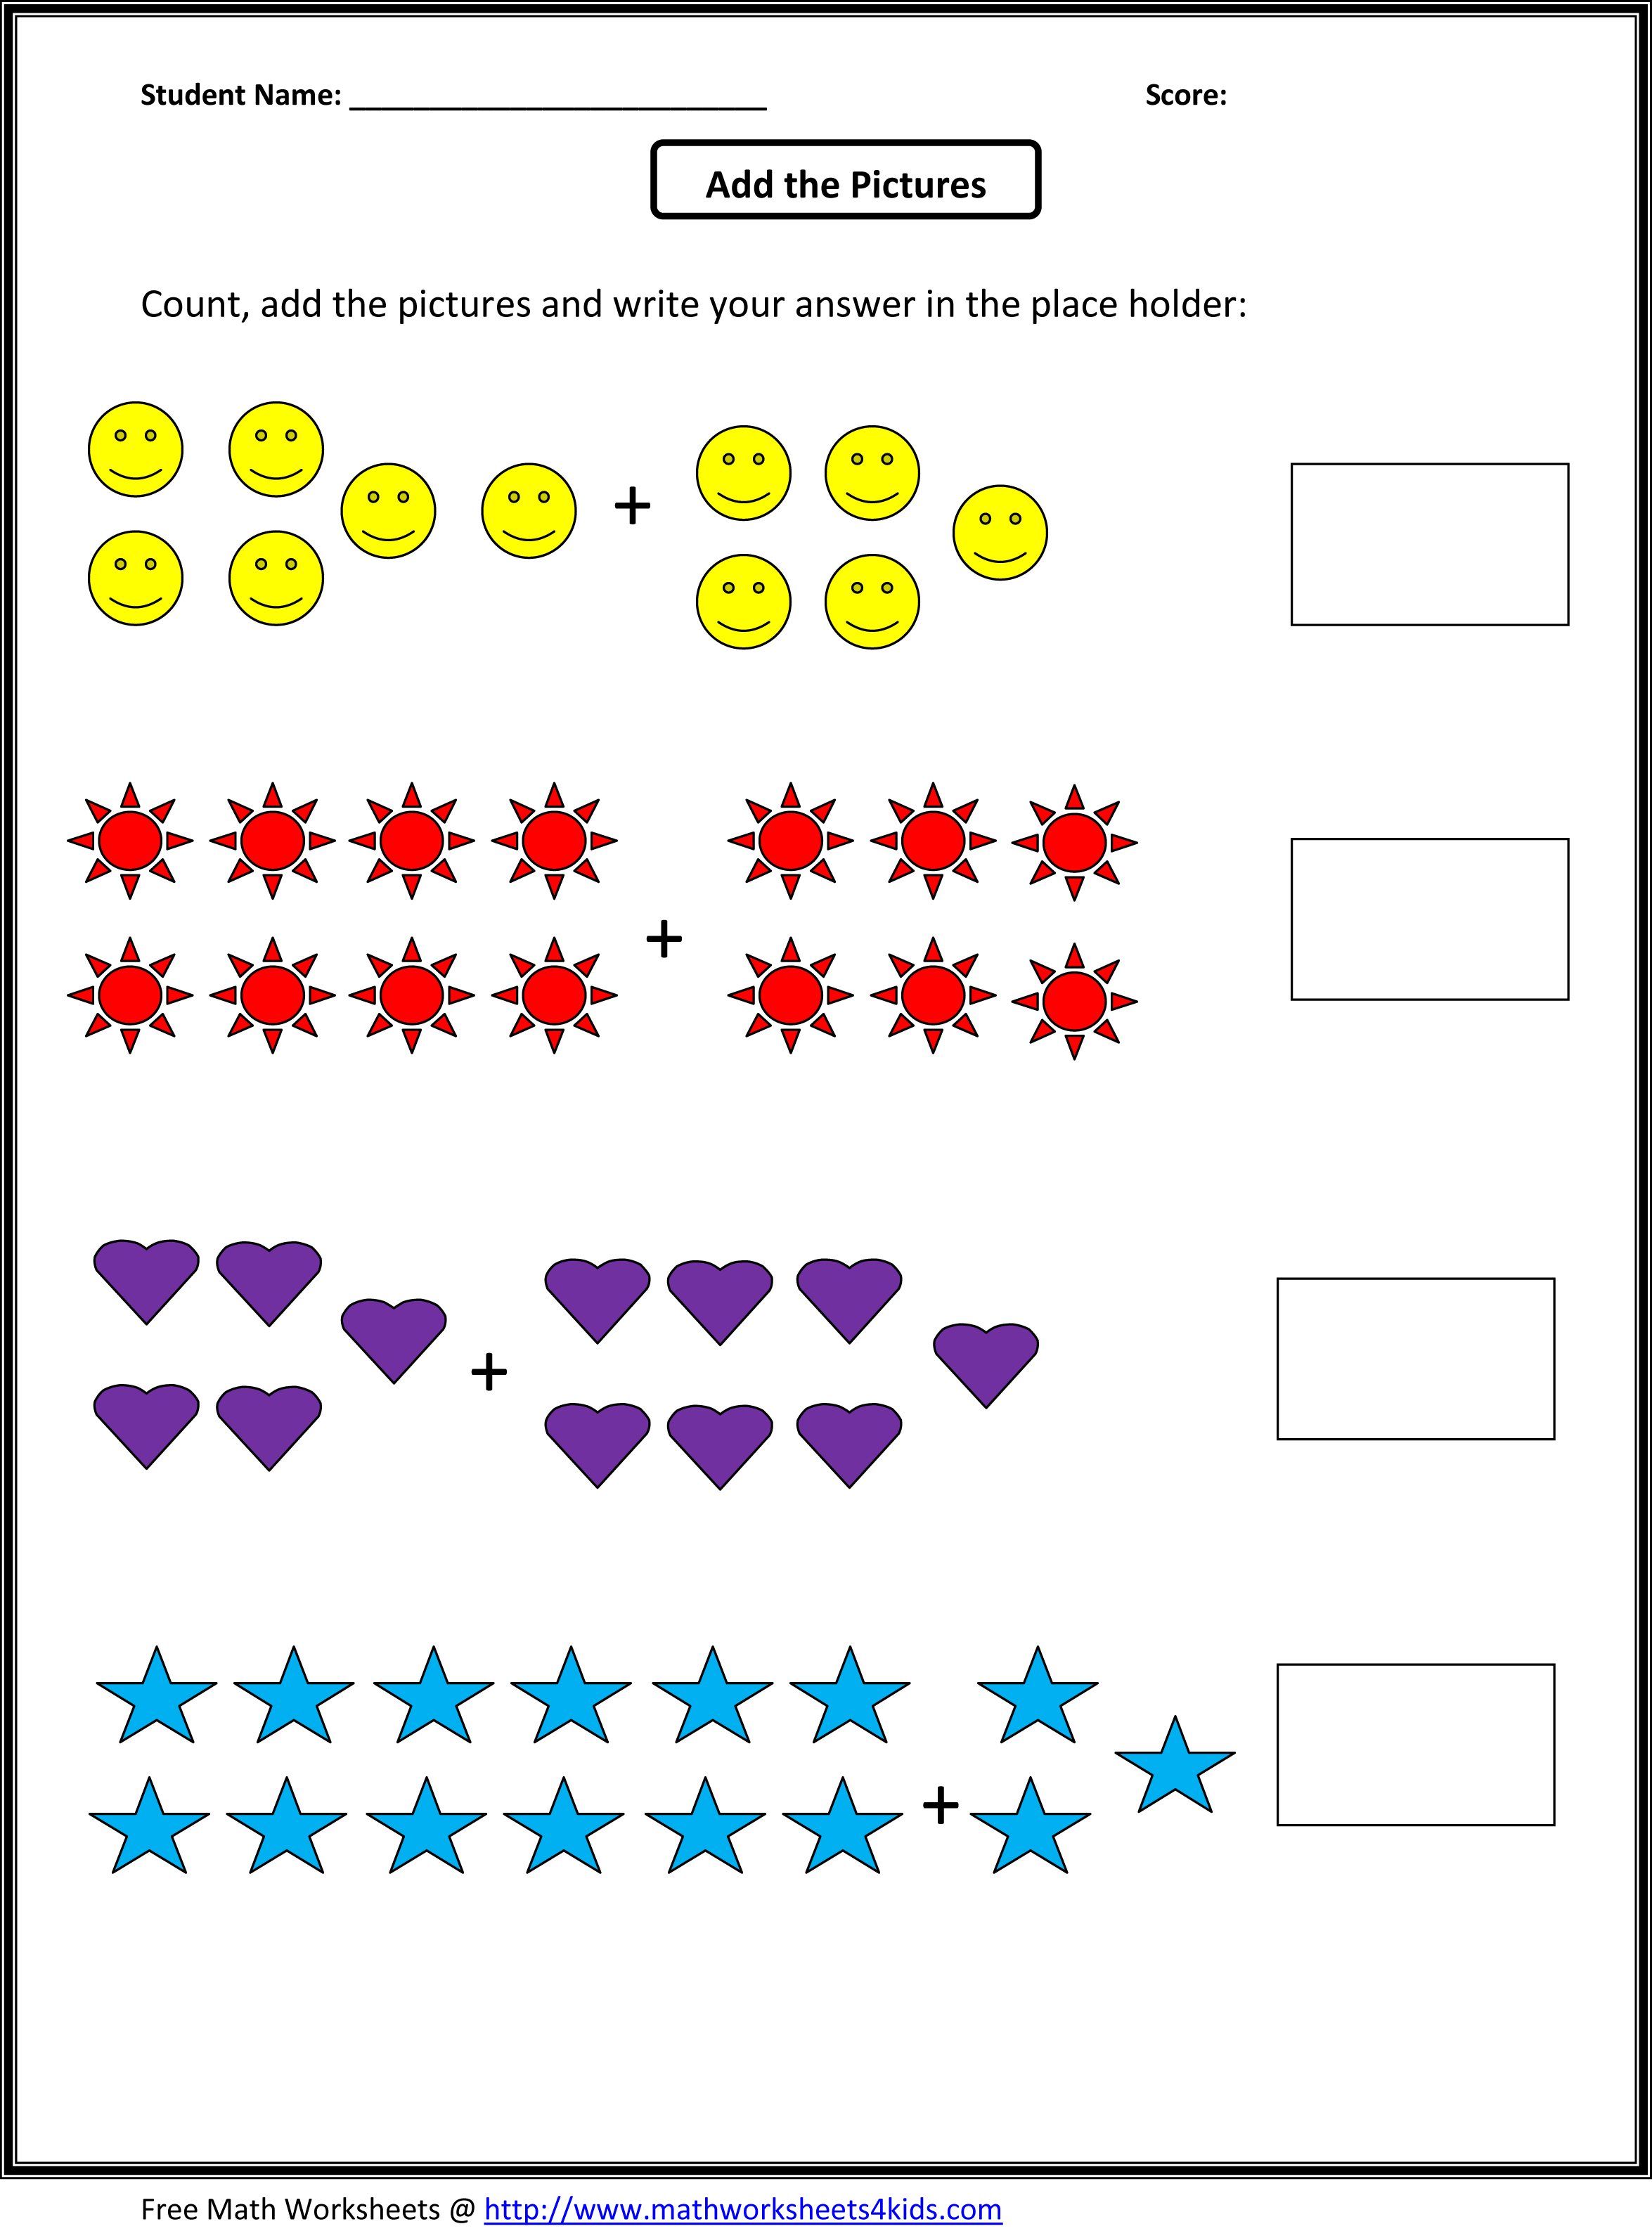 Weirdmailus  Pleasing Grade  Maths Worksheet  Reocurent With Glamorous Math Worksheets For St Grade Free  Reocurent With Beauteous Observation Skills Worksheets Also Math Facts Worksheets Nd Grade In Addition Multiple Step Equations Worksheet And Syllabication Worksheets As Well As Changing Fractions To Decimals Worksheets Additionally Math For Th Graders Worksheets From Reocurentcom With Weirdmailus  Glamorous Grade  Maths Worksheet  Reocurent With Beauteous Math Worksheets For St Grade Free  Reocurent And Pleasing Observation Skills Worksheets Also Math Facts Worksheets Nd Grade In Addition Multiple Step Equations Worksheet From Reocurentcom